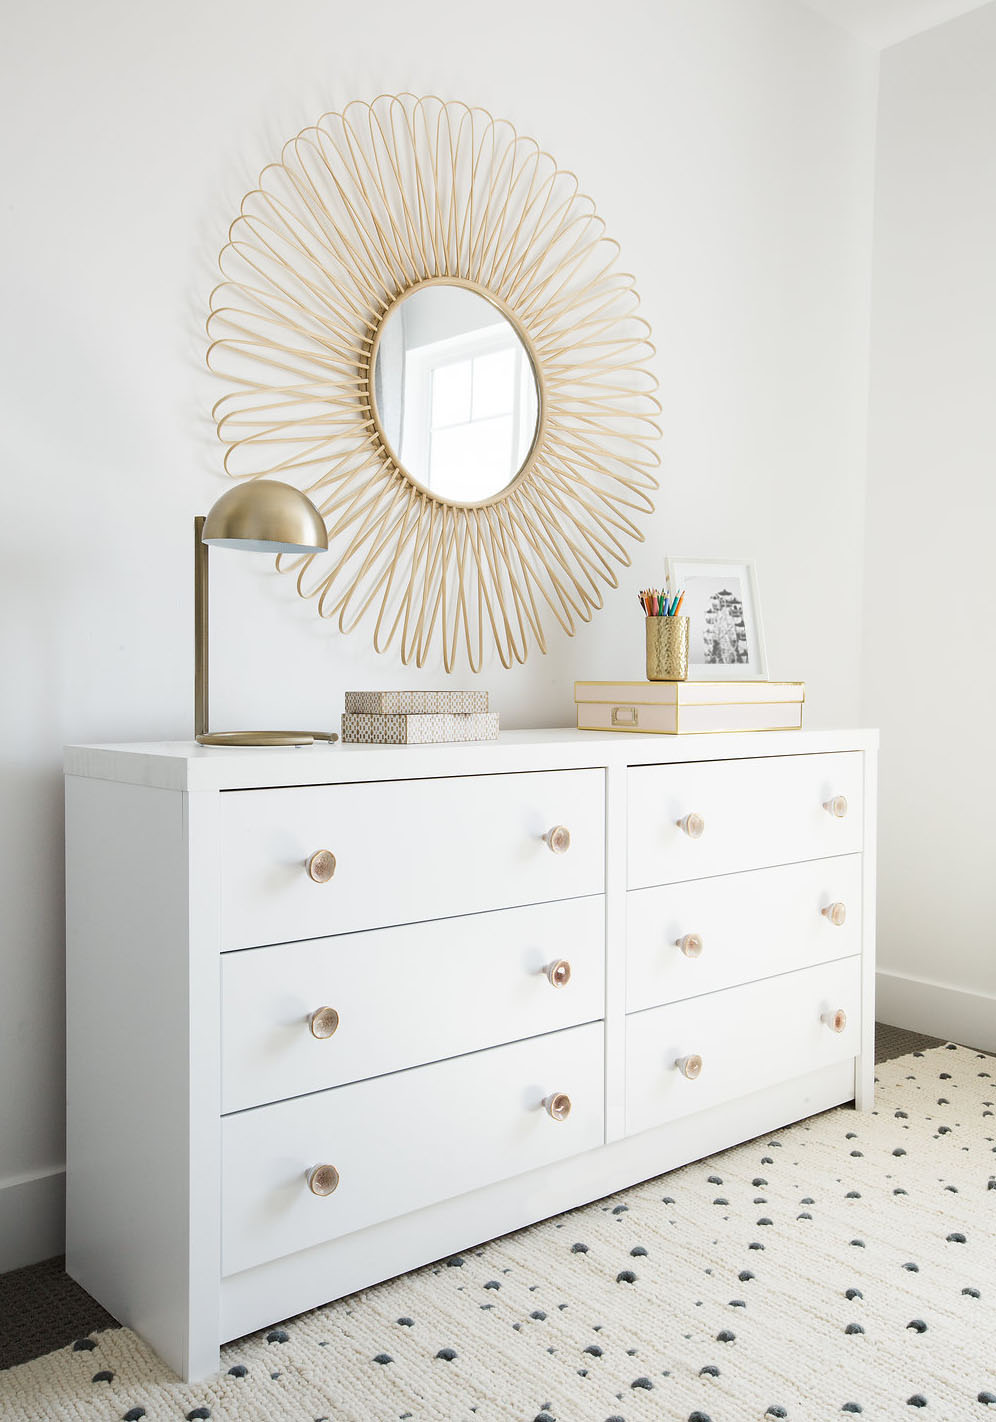 Akin Design Studio | Modern Girl's Bedroom